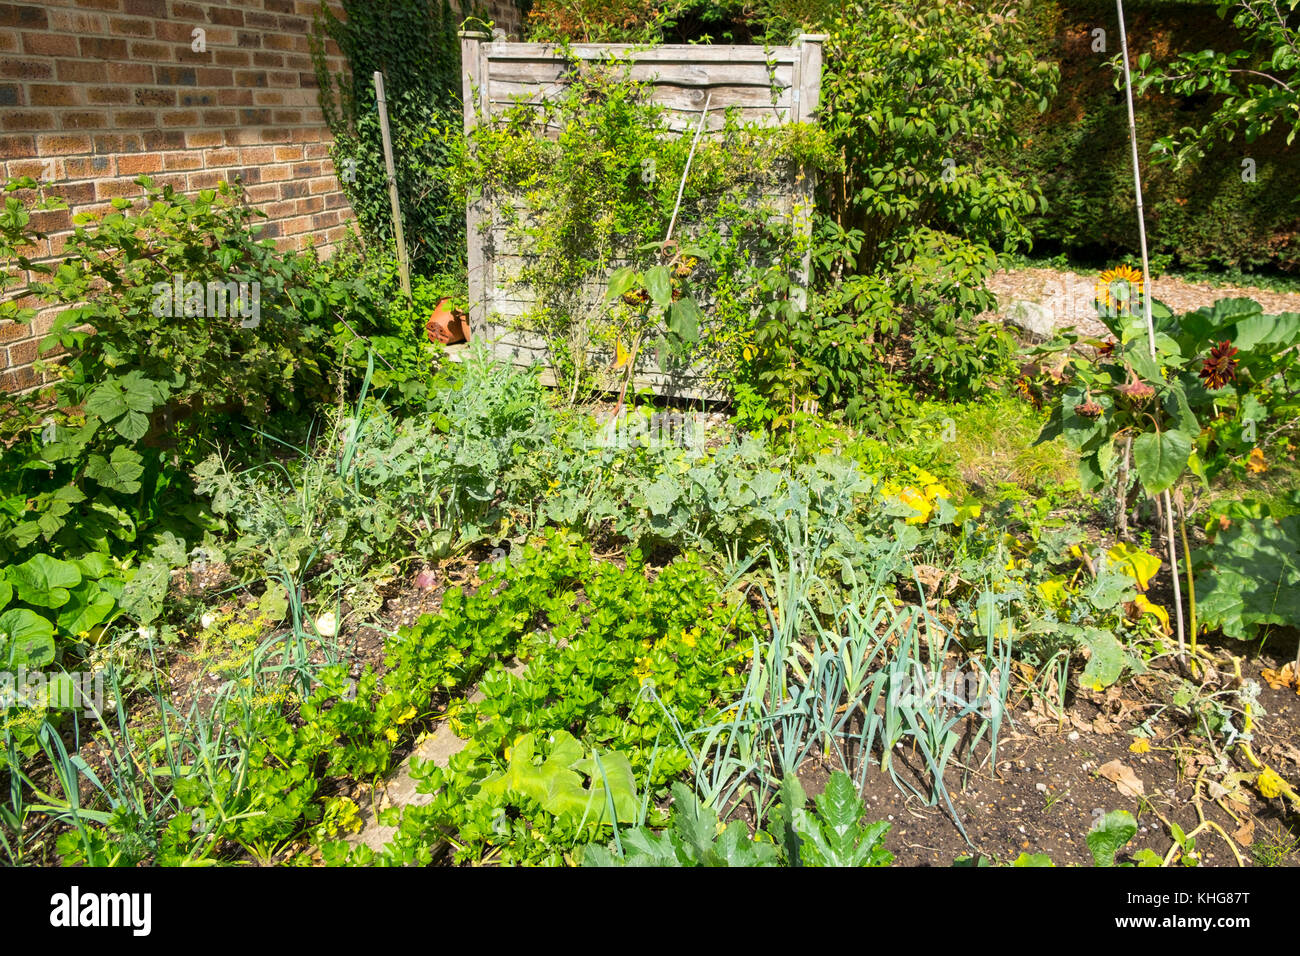 Homegrown vegetable patch allotment in front garden, Kent, UK - Stock Image